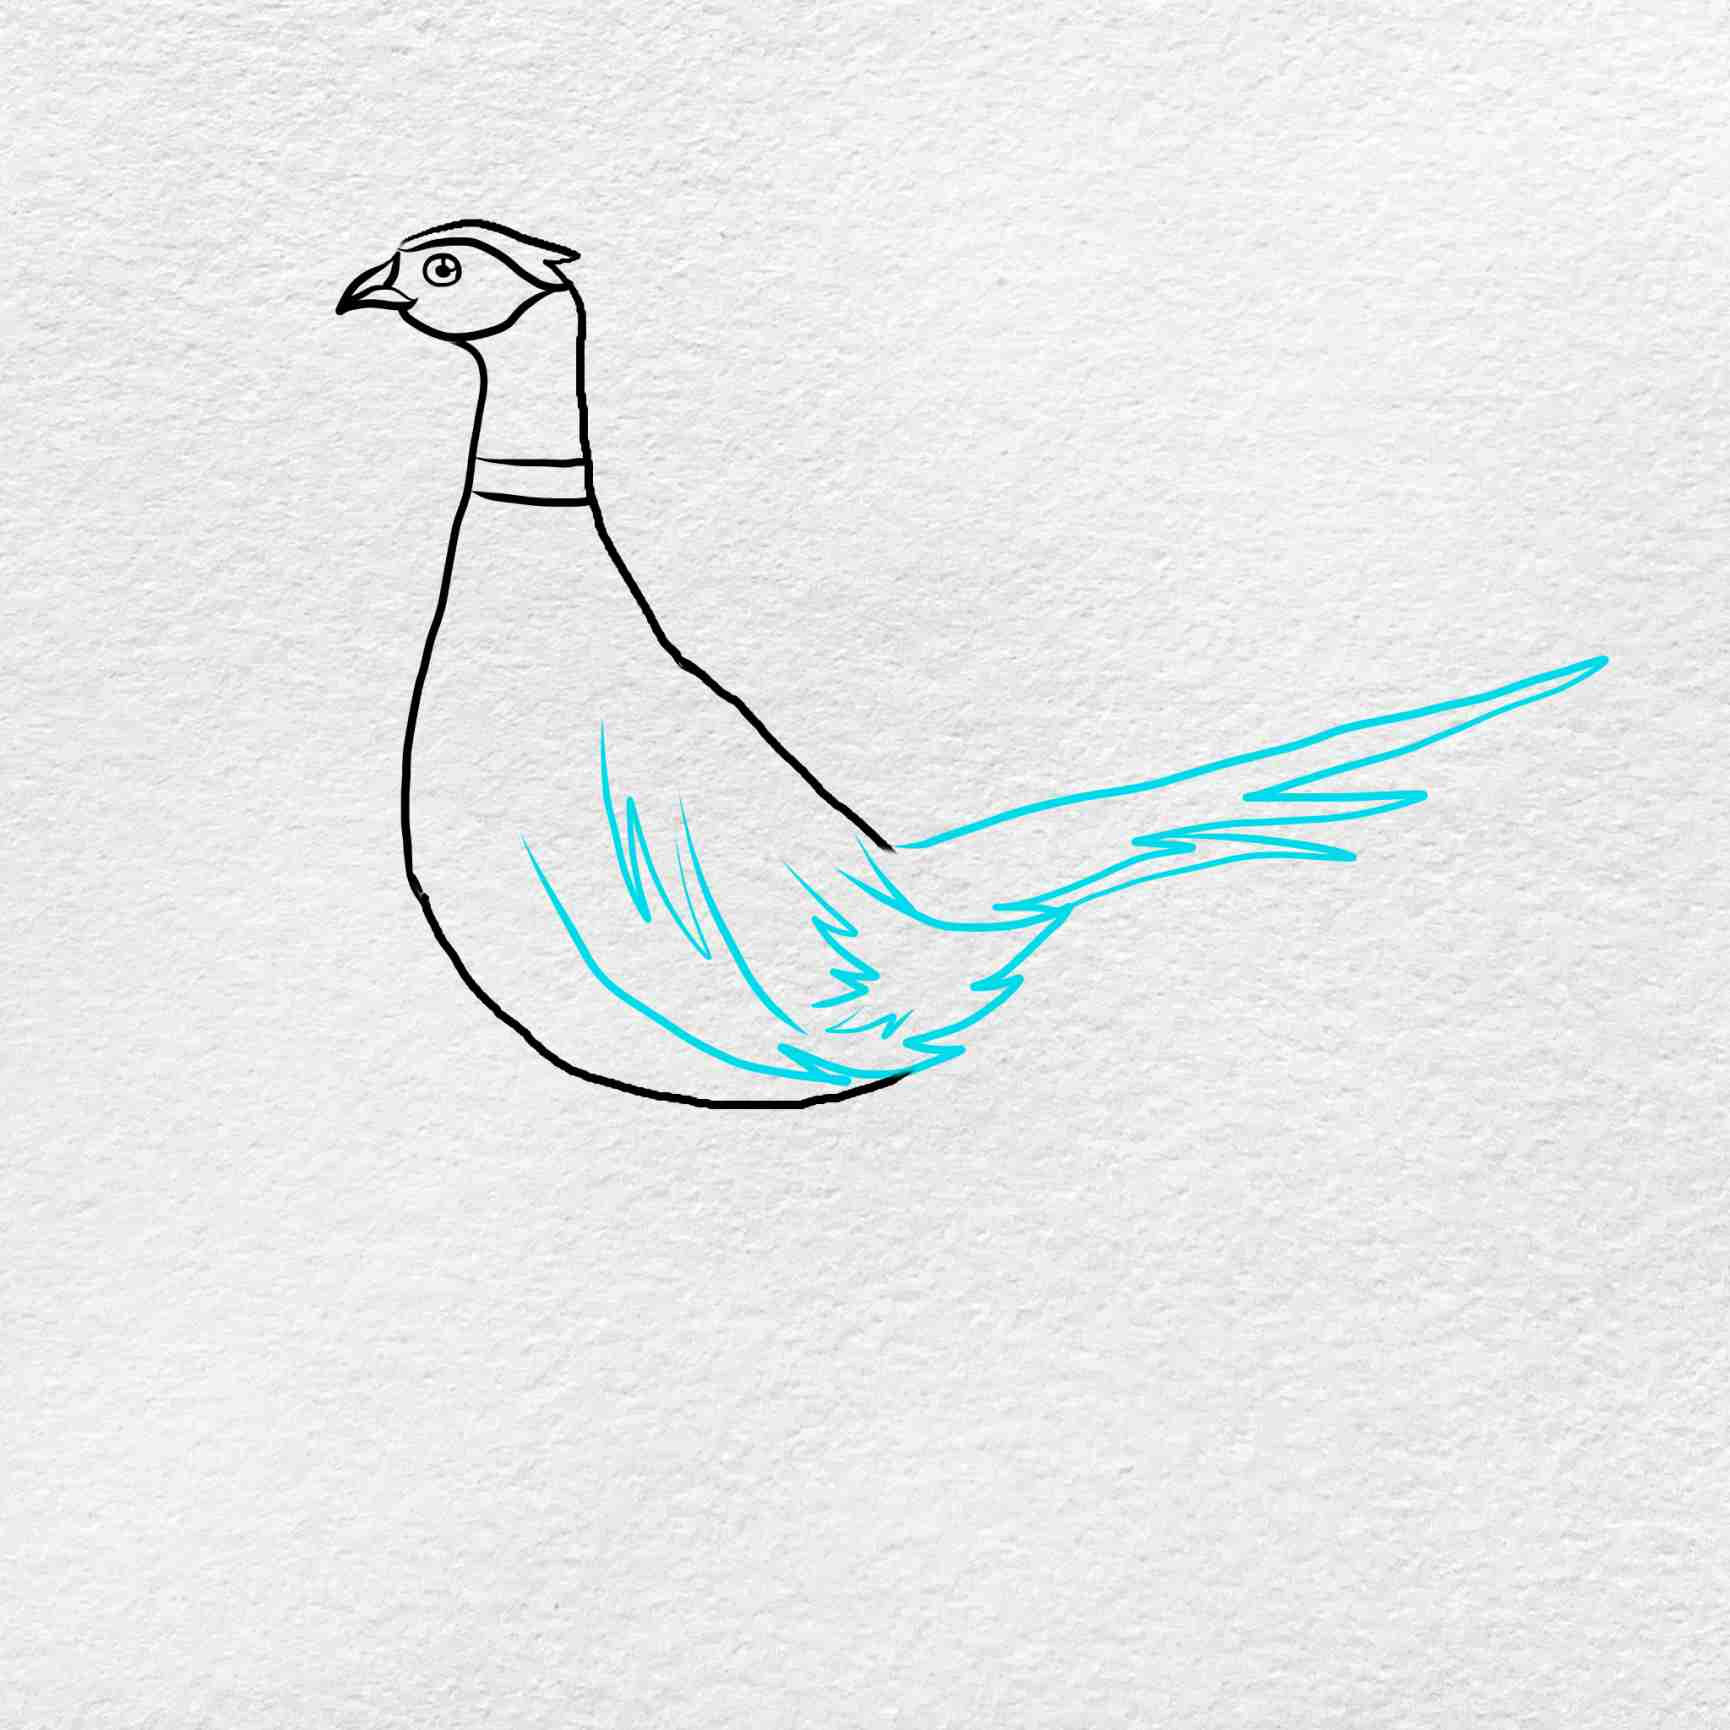 How To Draw Pheasant: Step 4